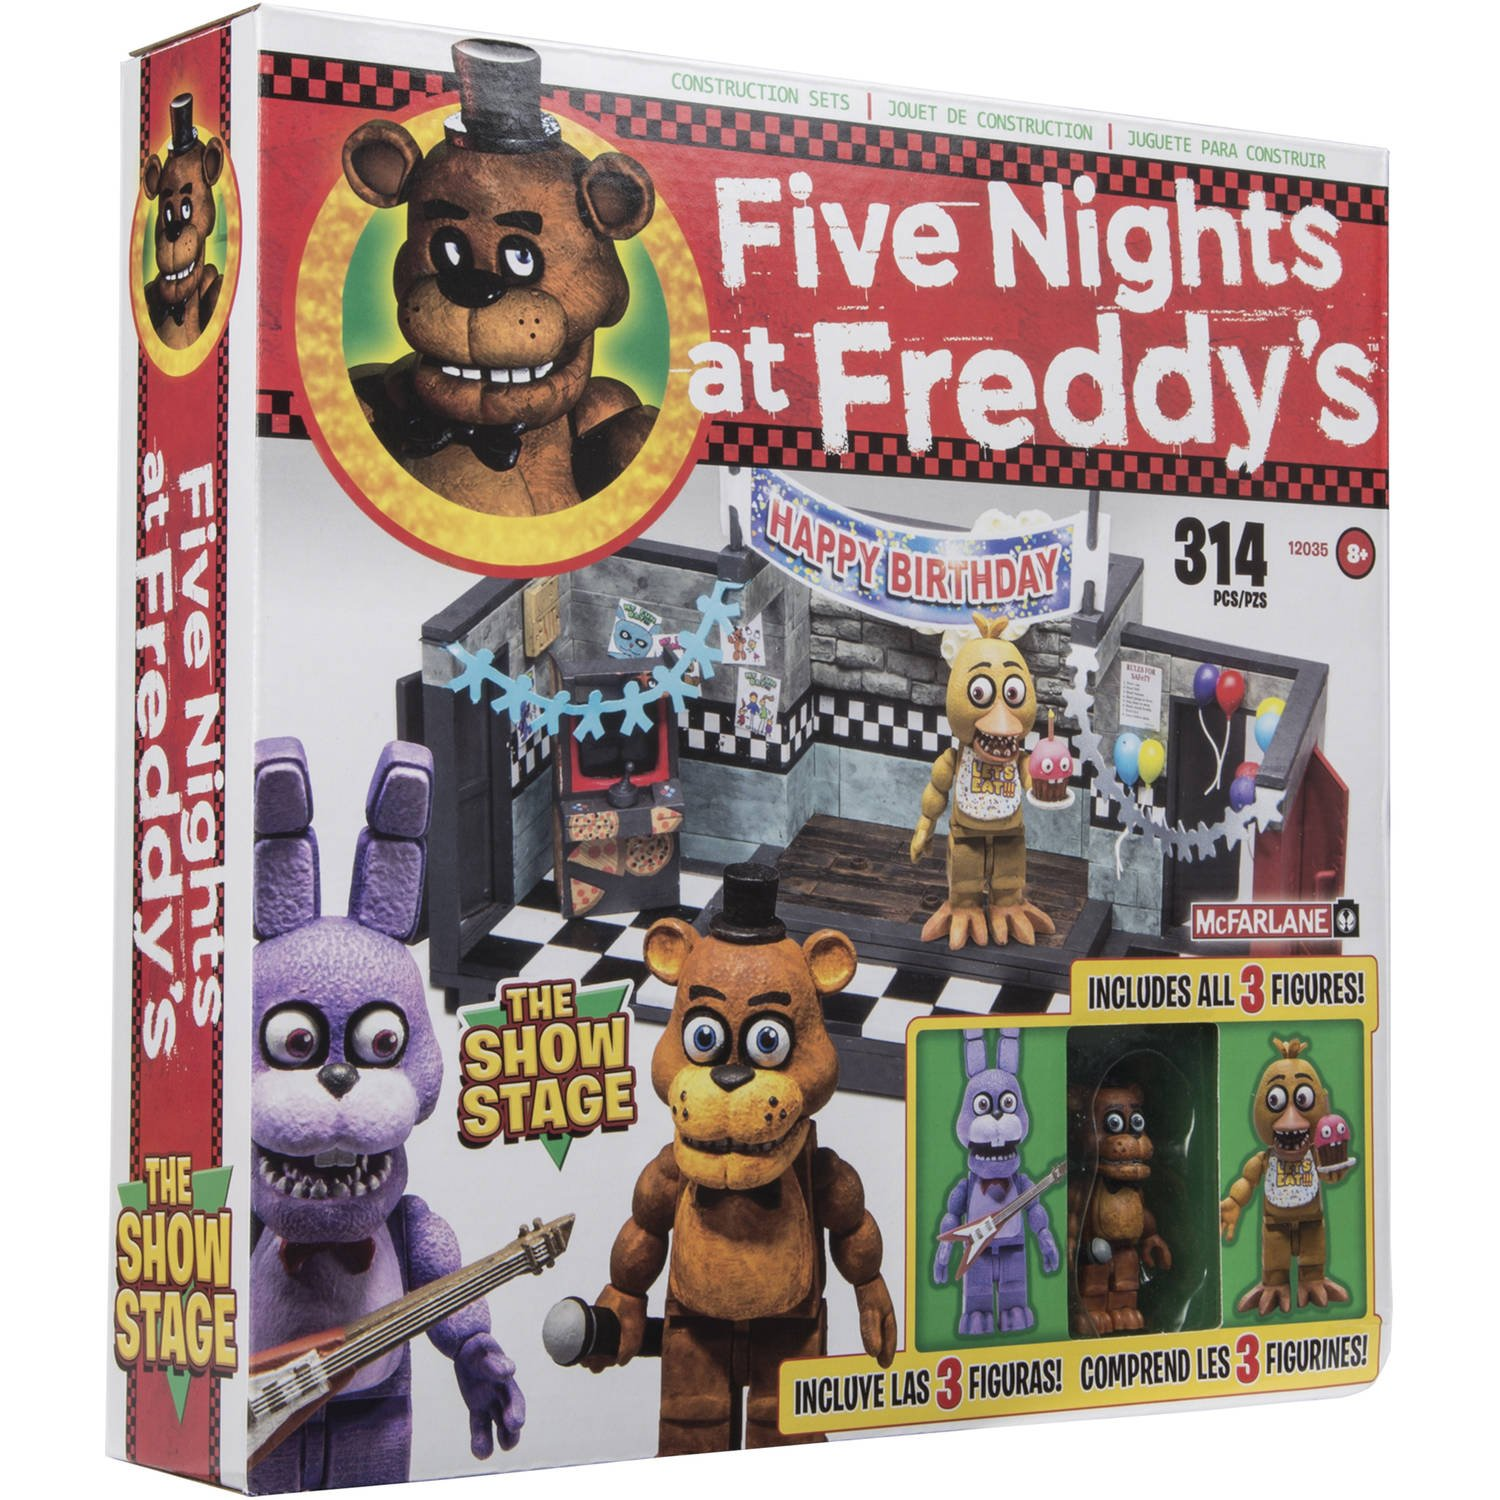 More five nights at freddy s construction sets coming soon - Five Nights At Freddy S The Show Stage